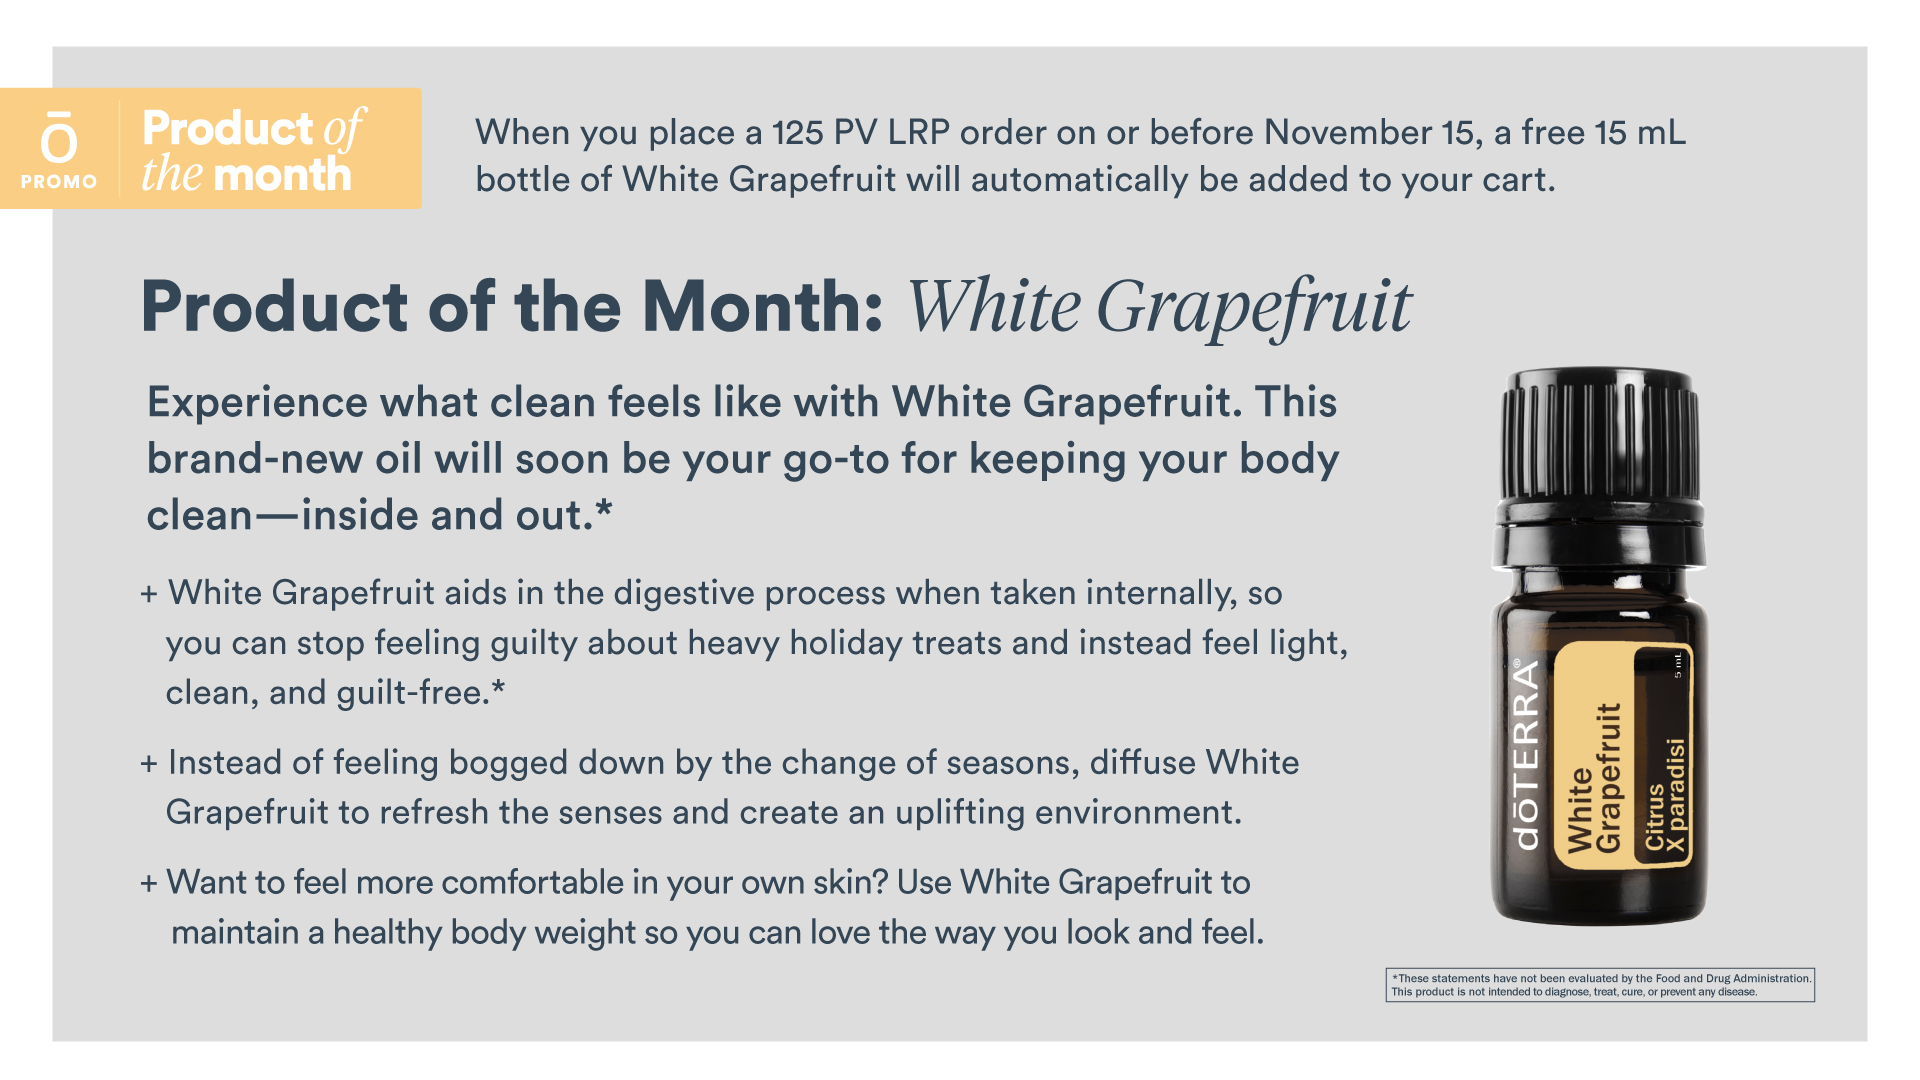 November 2019 doTERRA Product of the Month: White Grapefruit's name comes from the color of its white peel but shares similar chemistry and characteristics of other grapefruit varieties. Not quite as sweet as its pink grapefruit cousin, the aroma of White Grapefruit still evokes a fruity, citrusy tone. High in Limonene, the oil is cold pressed from the fresh peel. This oil shines at creating a fresh, sweet environment. Ideal as a joy-enhancing air freshener, the scent of White Grapefruit is clarifying, cheering and uplifting. White Grapefruit is high in limonene, which makes it great for skin and dental cleansing. It may also help support gastrointenstinal health and metabolism when taken internally.